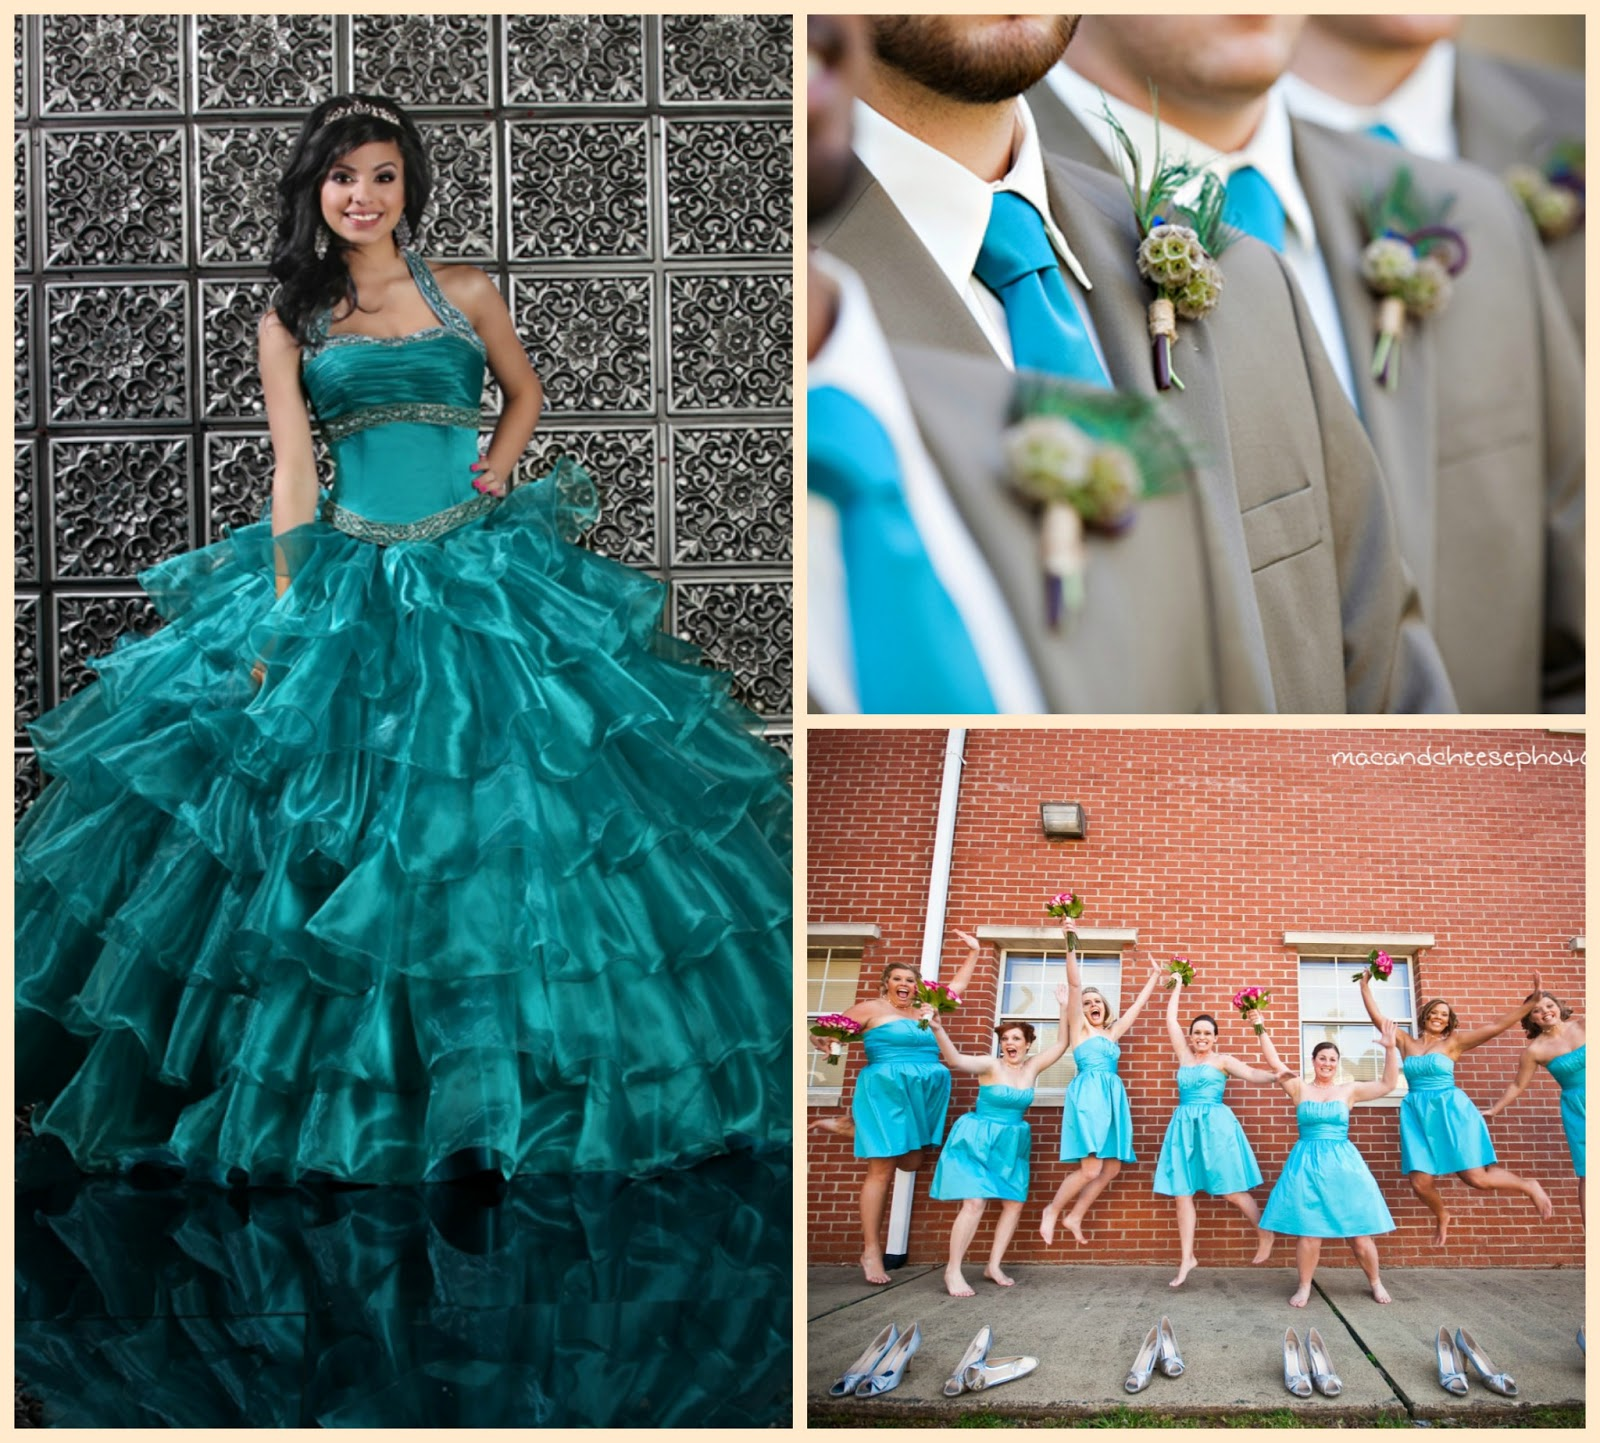 A Marriage of Passion & Style: Teal Ribbon, Teal Wedding